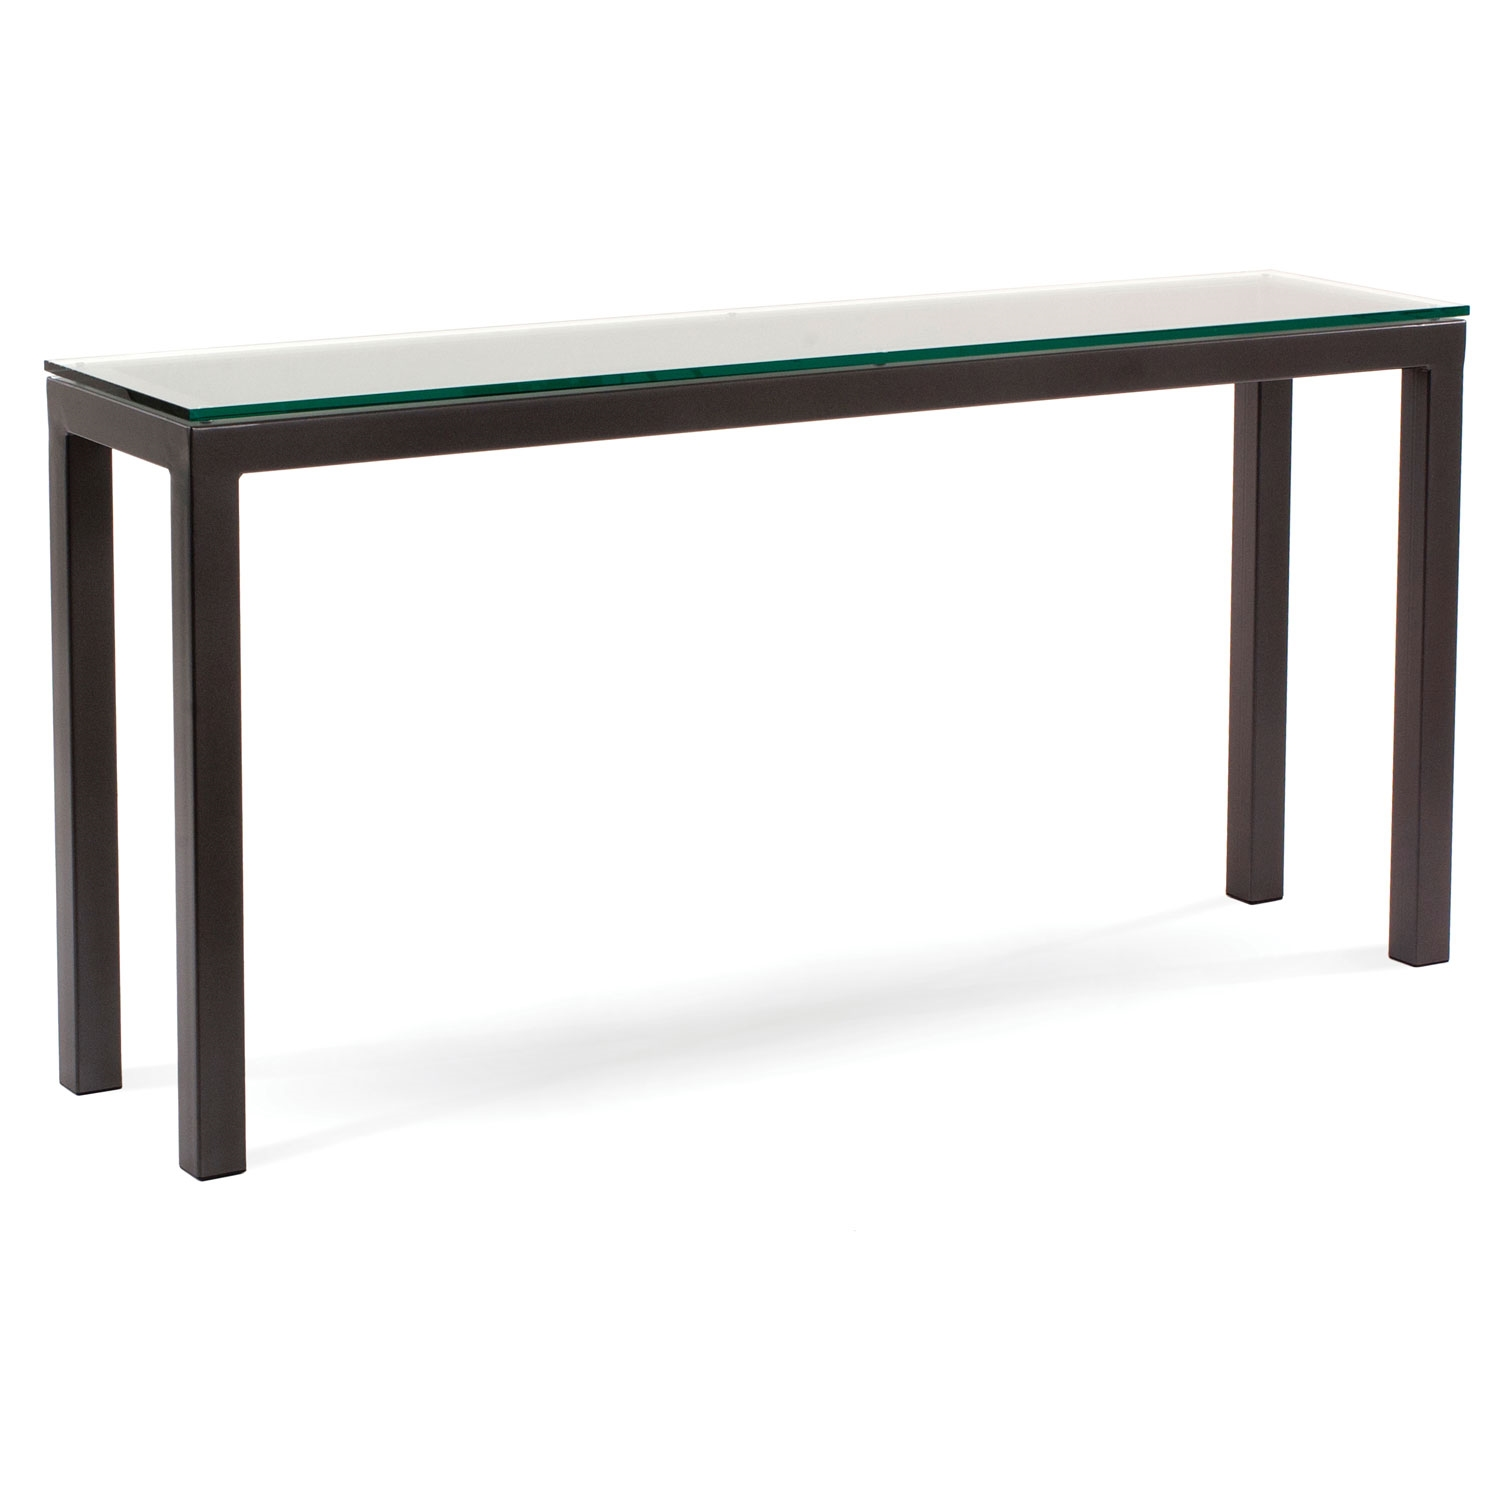 60 in contemporary parsons console table w 60 in x d 14 in x h pictured is the charleston forge manufactured 60 in parsons console table that measures 60 geotapseo Choice Image